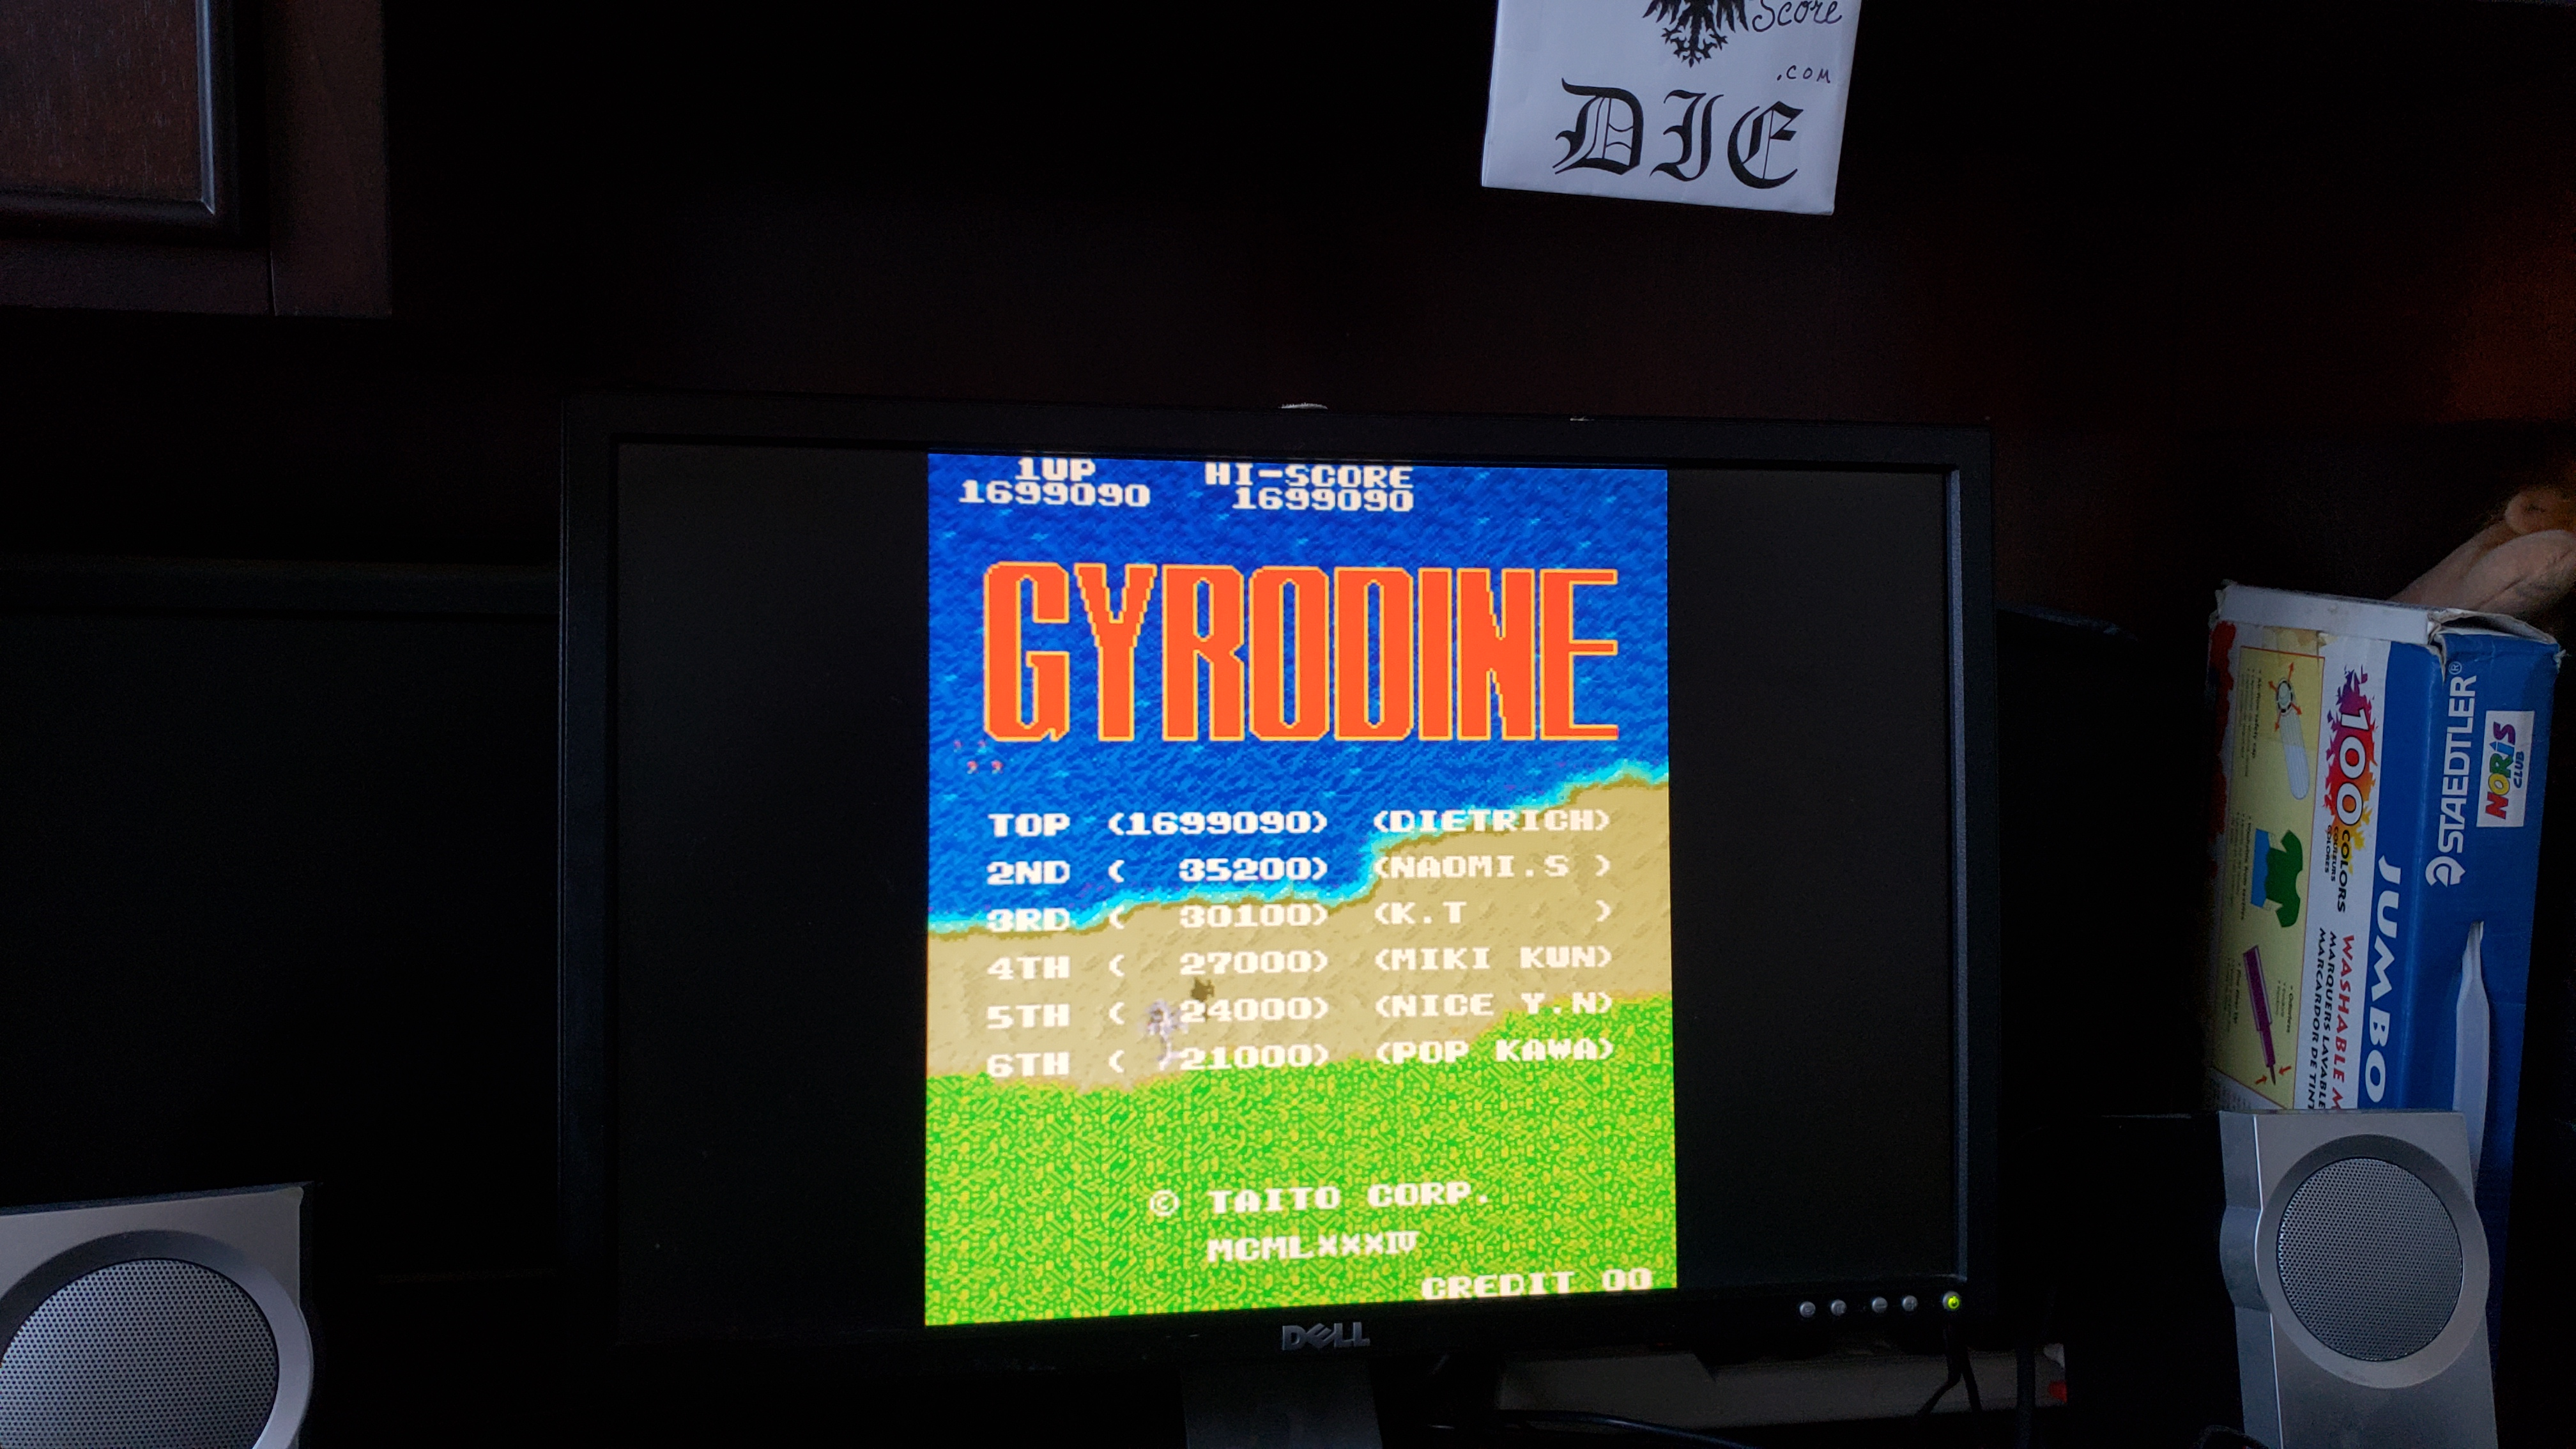 MikeDietrich: Gyrodine [gyrodine] (Arcade Emulated / M.A.M.E.) 1,699,090 points on 2018-12-23 15:50:49